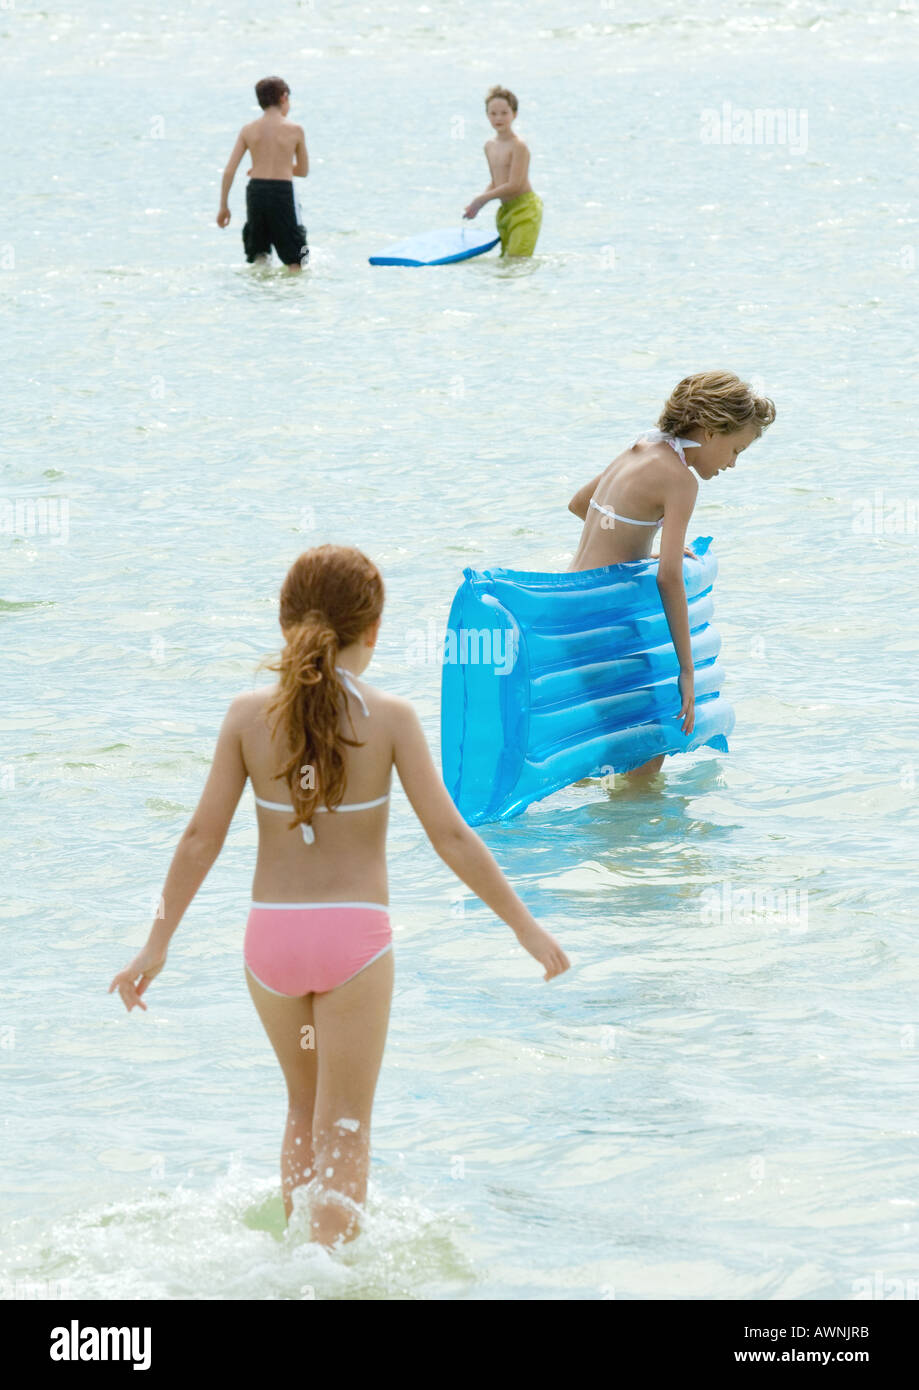 Children playing in water at the beach Stock Photo